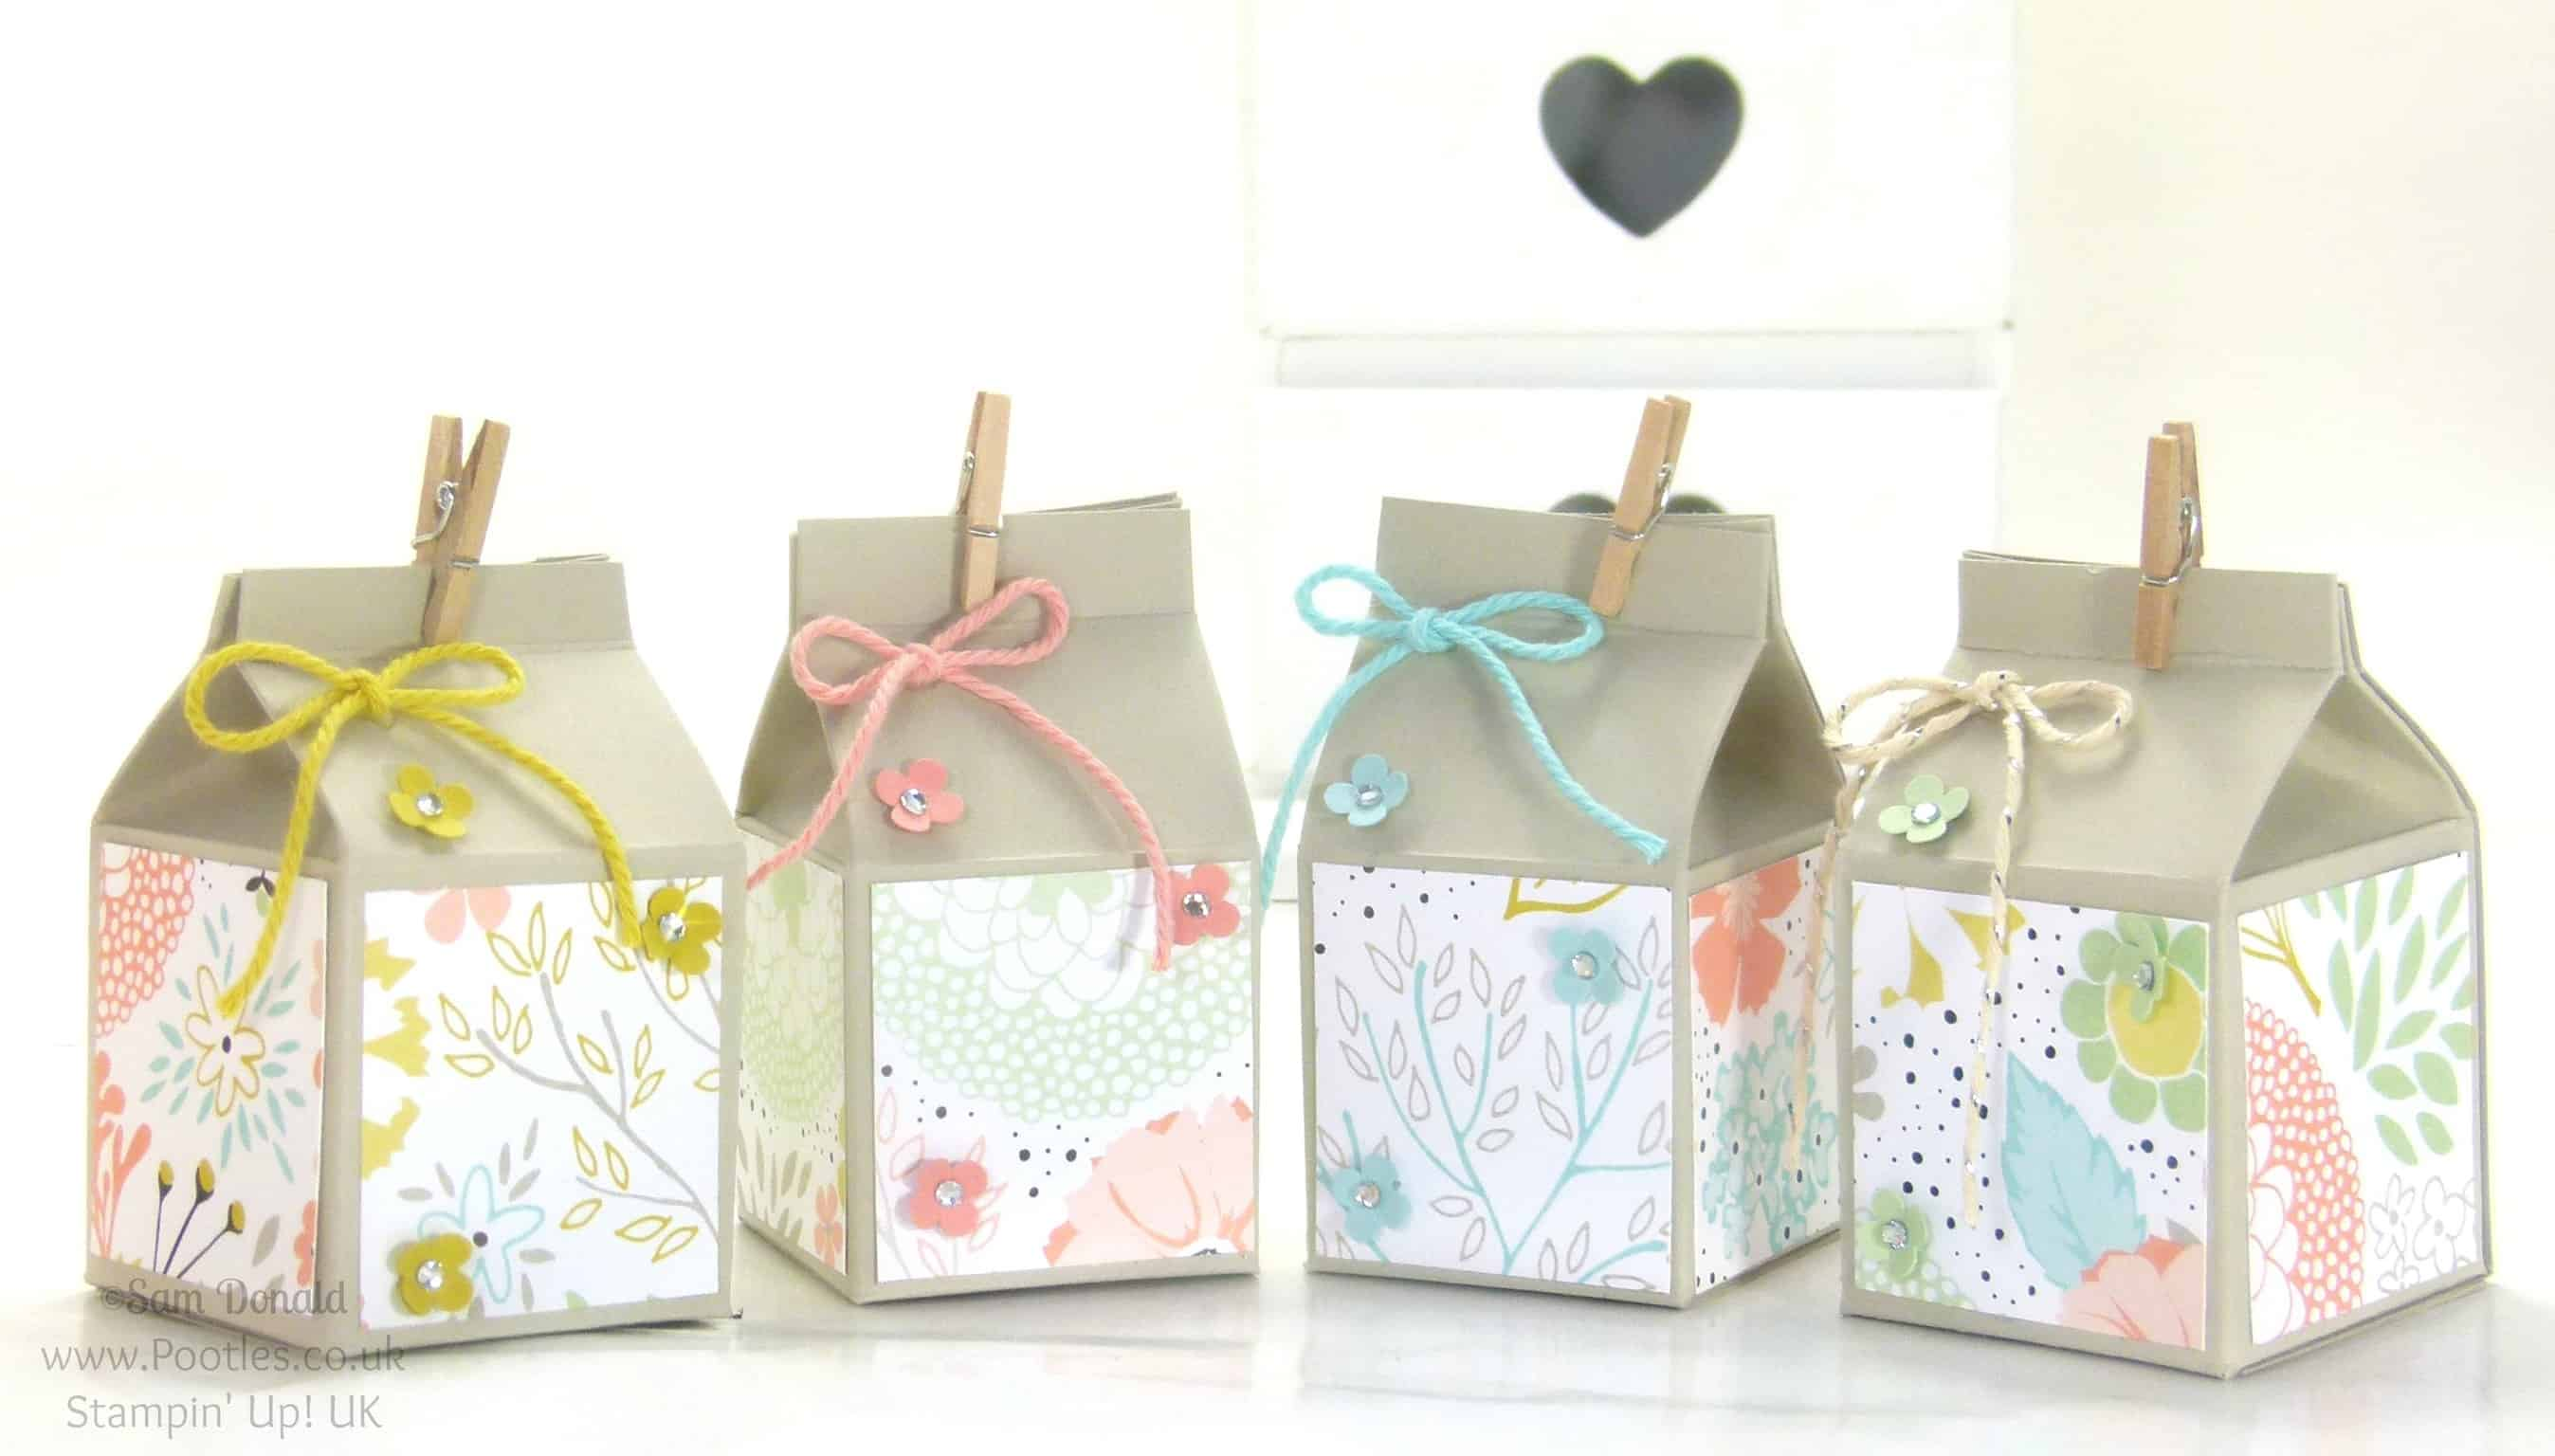 POOTLES Stampin' Up! UK Mini Hand Cut Milk Cartons Tutorial